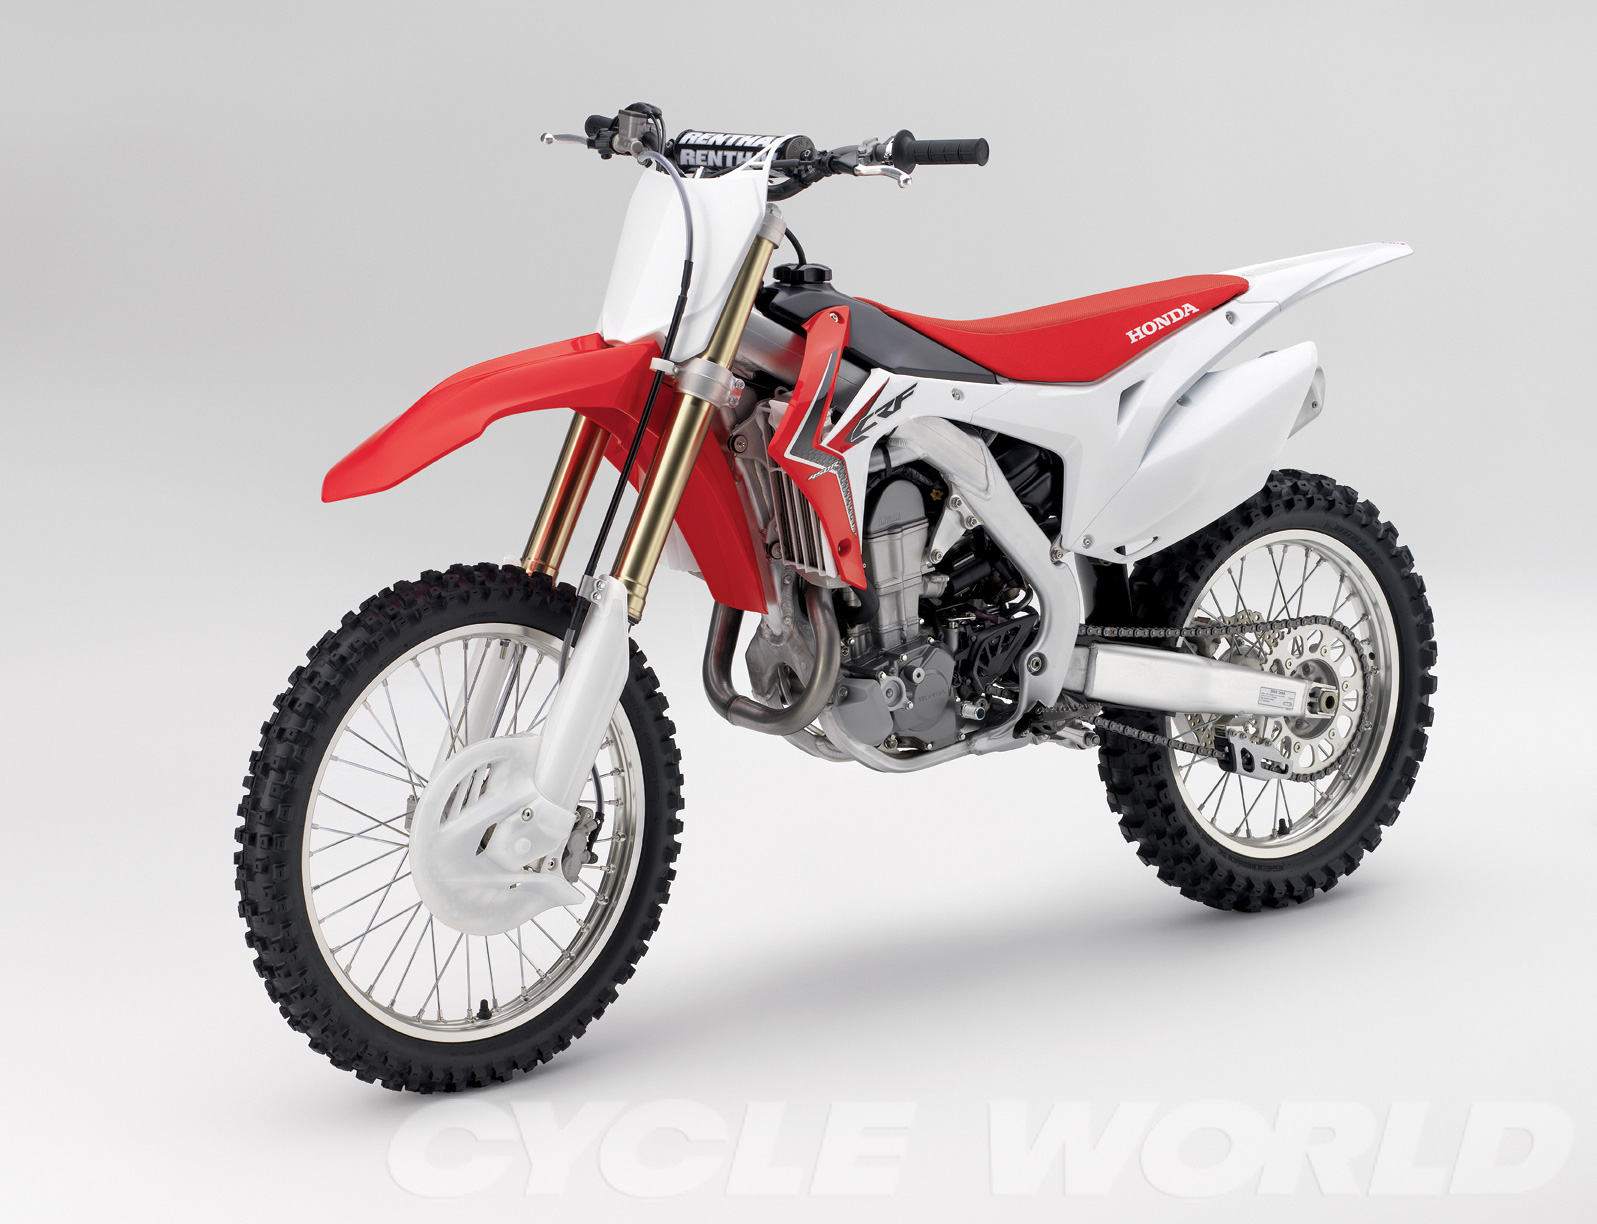 information world 2013 honda crf250r review pictures and specs. Black Bedroom Furniture Sets. Home Design Ideas